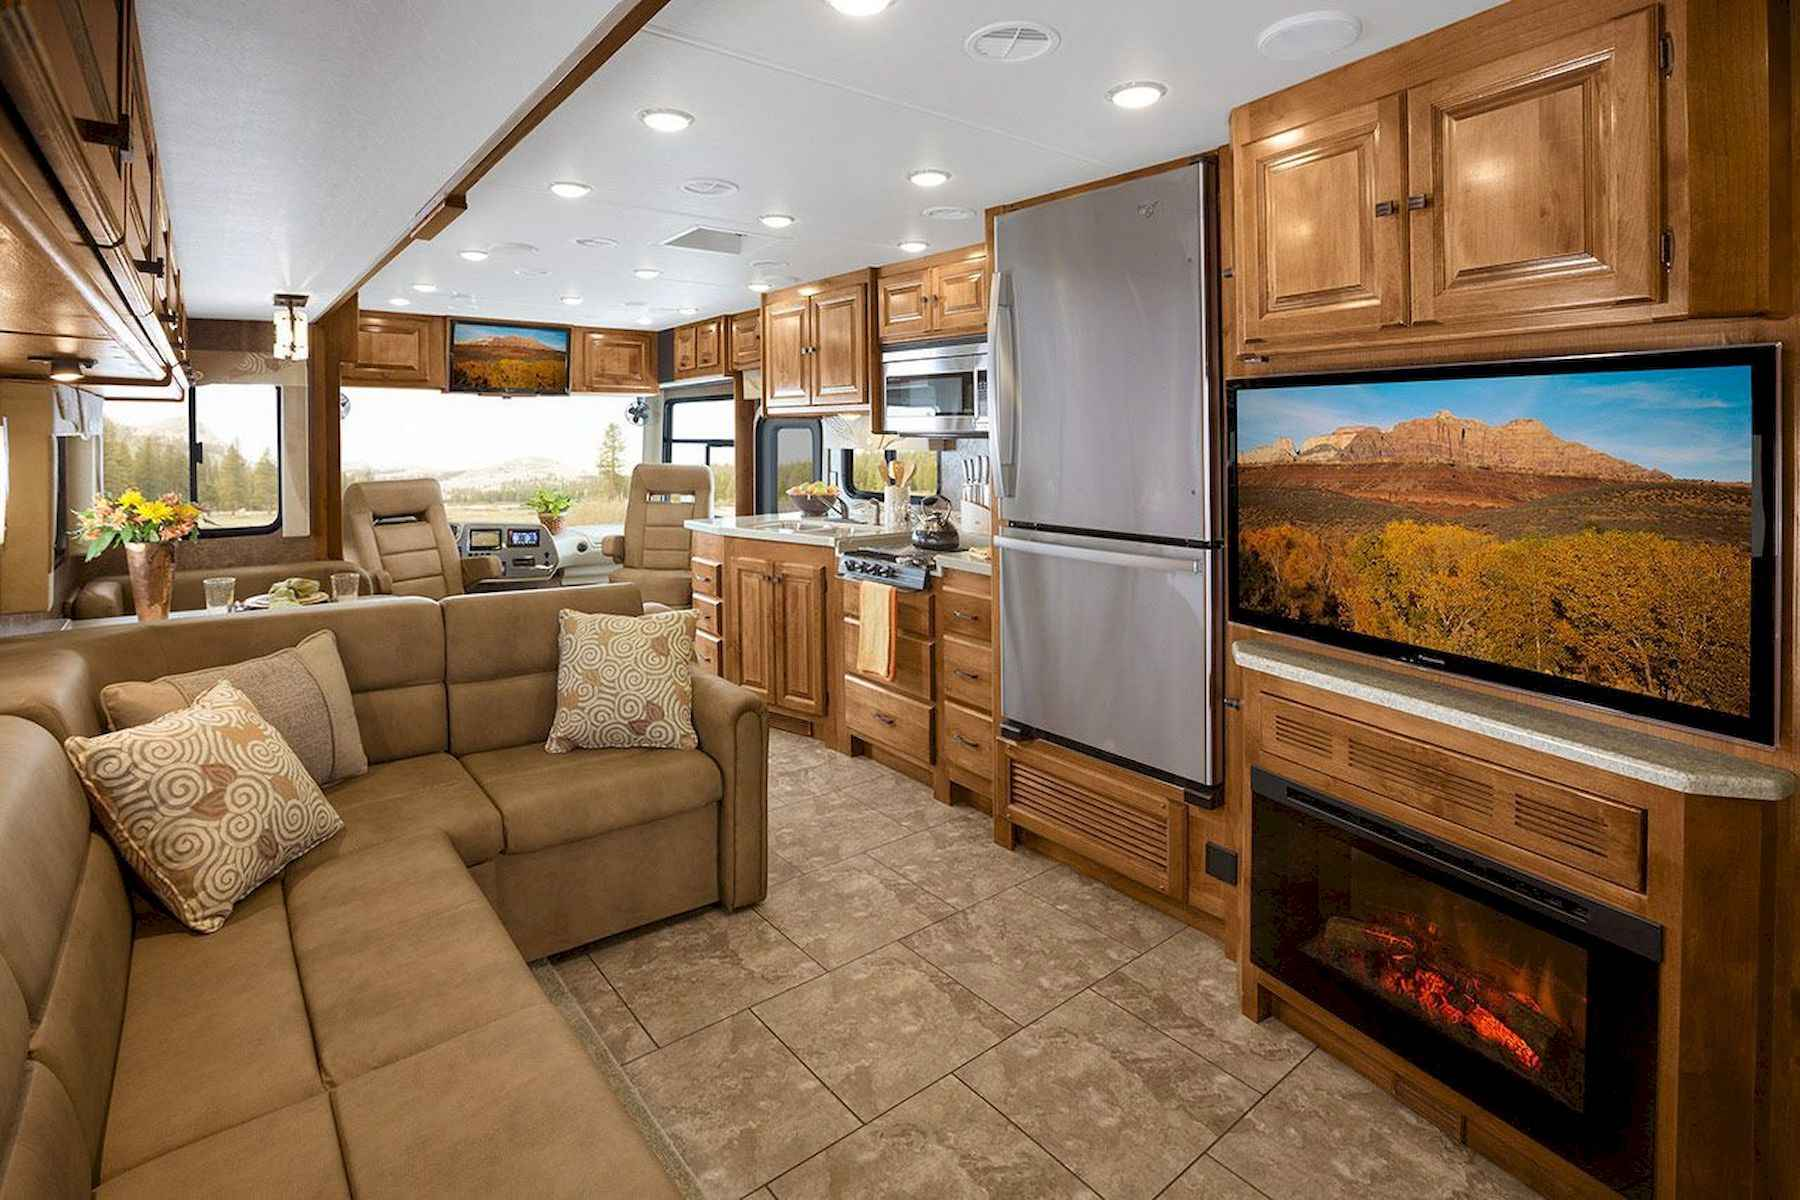 70 Stunning RV Living Camper Room Ideas Decorations Make Your Summer Awesome (52)